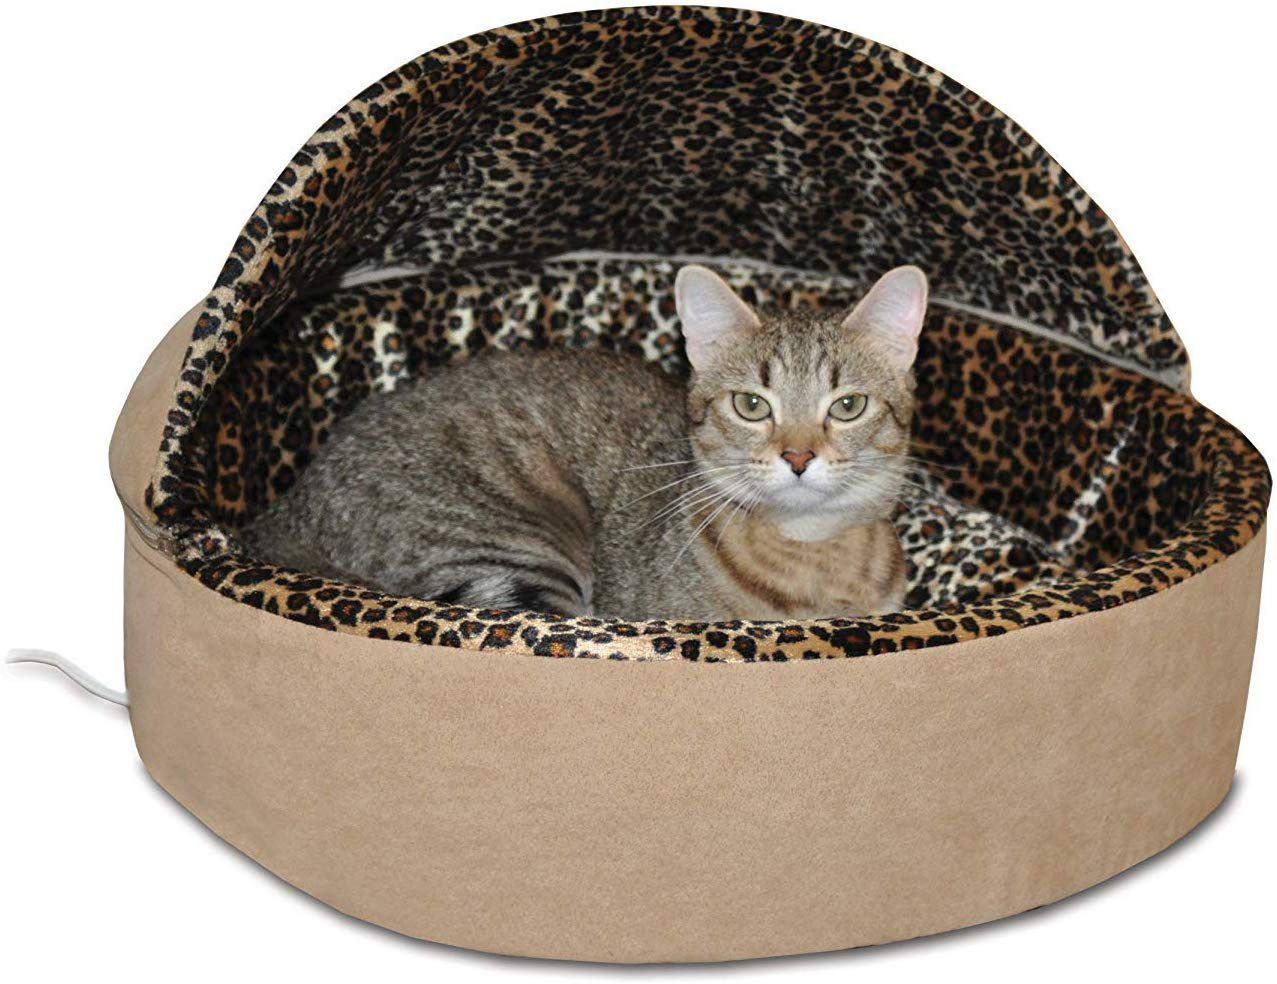 Amazons bestselling heated cat house got a crazy cute